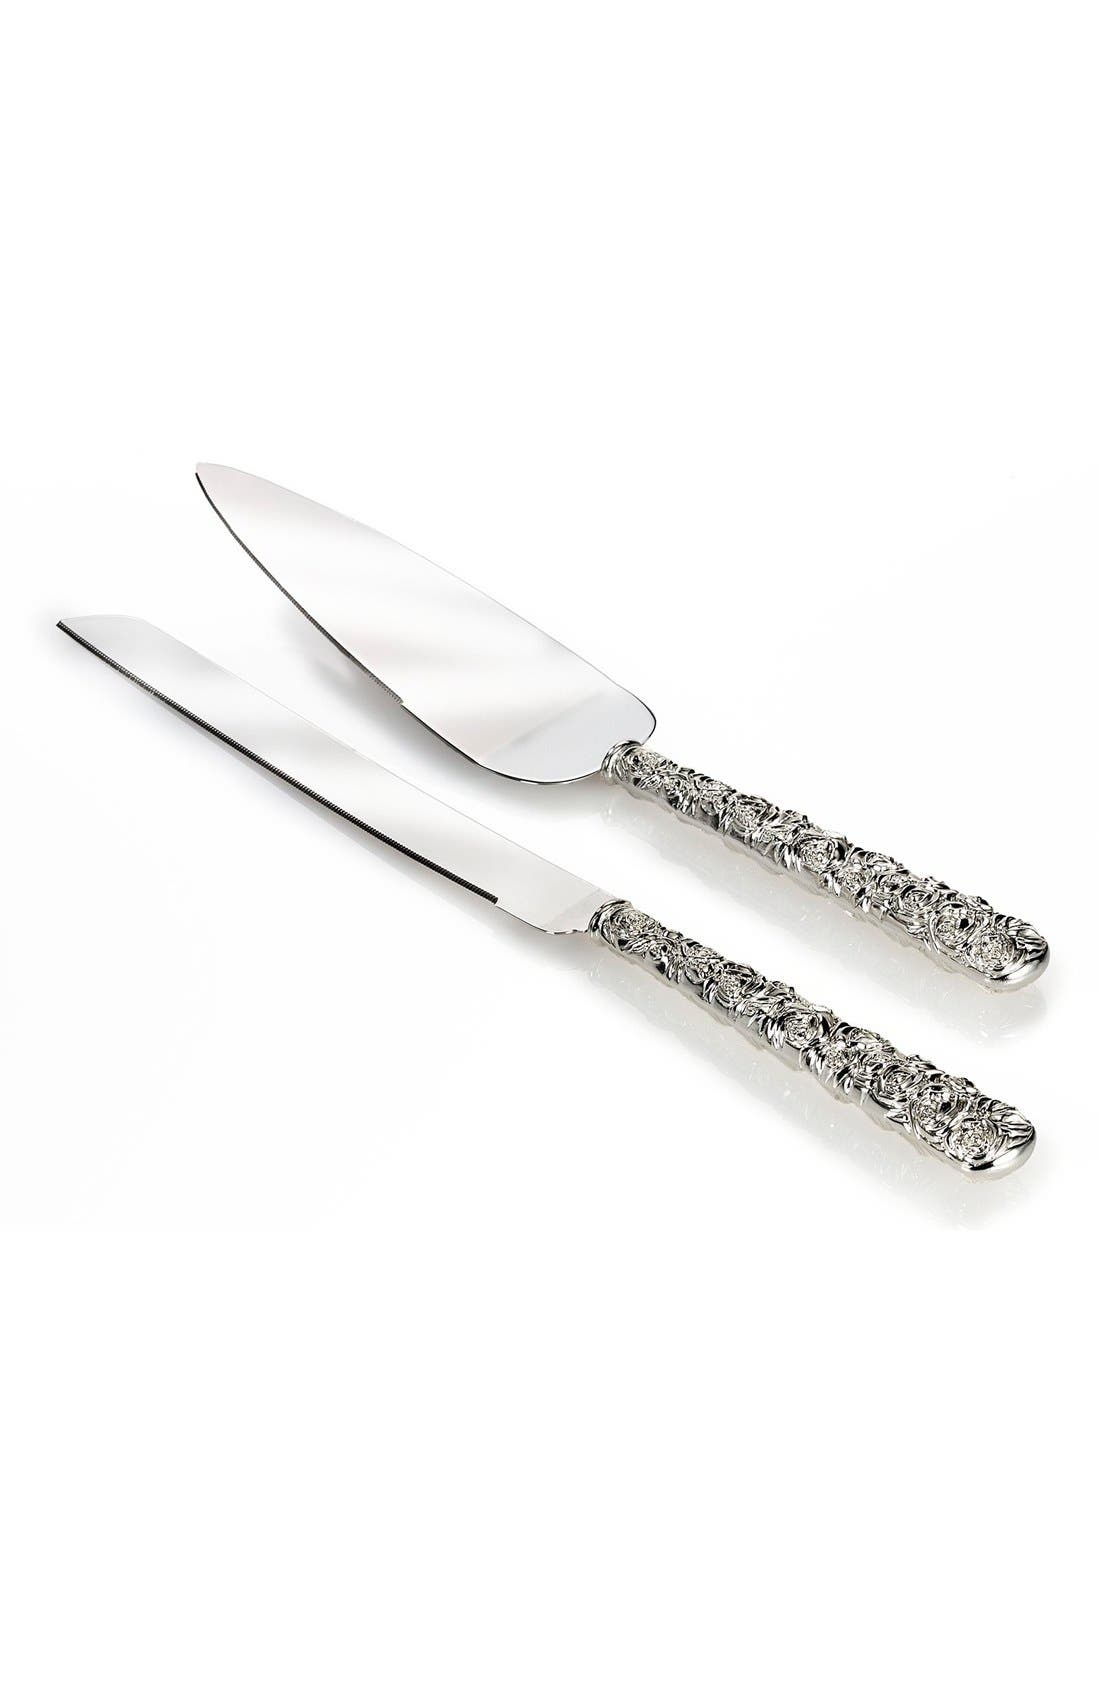 Monique Lhuillier Waterford 'Sunday Rose' Silverplate 2-Piece Cake Serving Set,                             Main thumbnail 1, color,